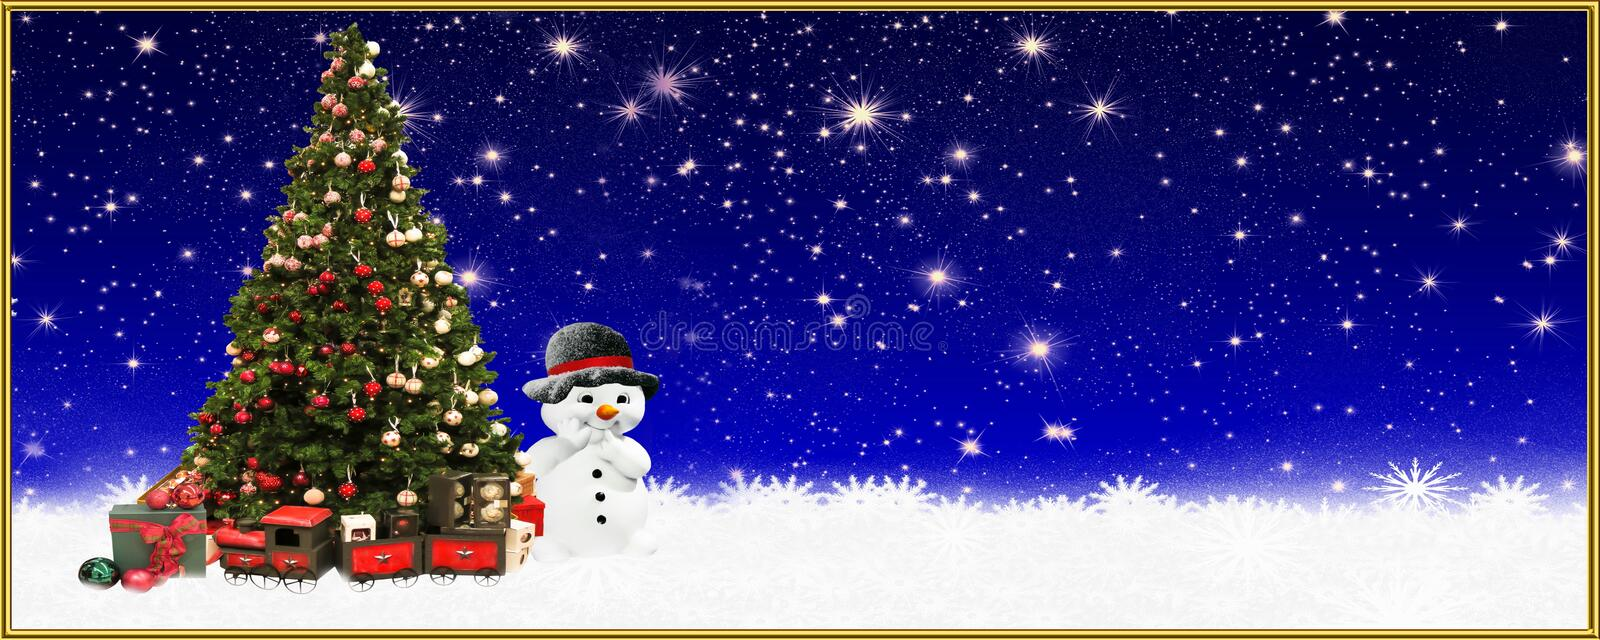 Christmas: Christmas tree and snowman, banner, background stock images